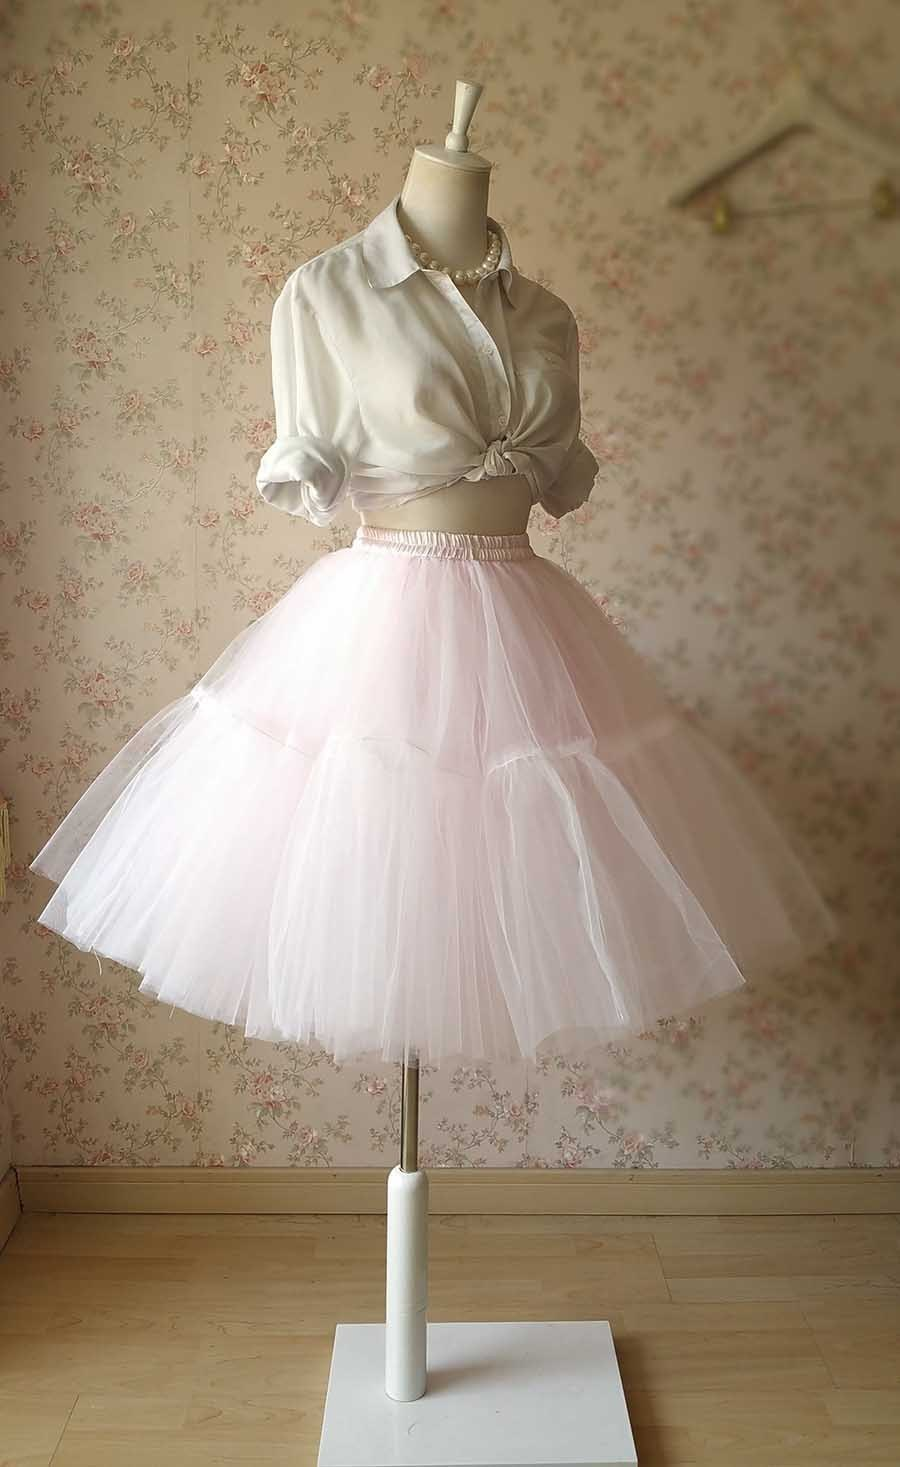 Pink Midi Length Ruffle Tulle Skirt Women Girl Pink Ballerina Skirt 6 Layer NWT